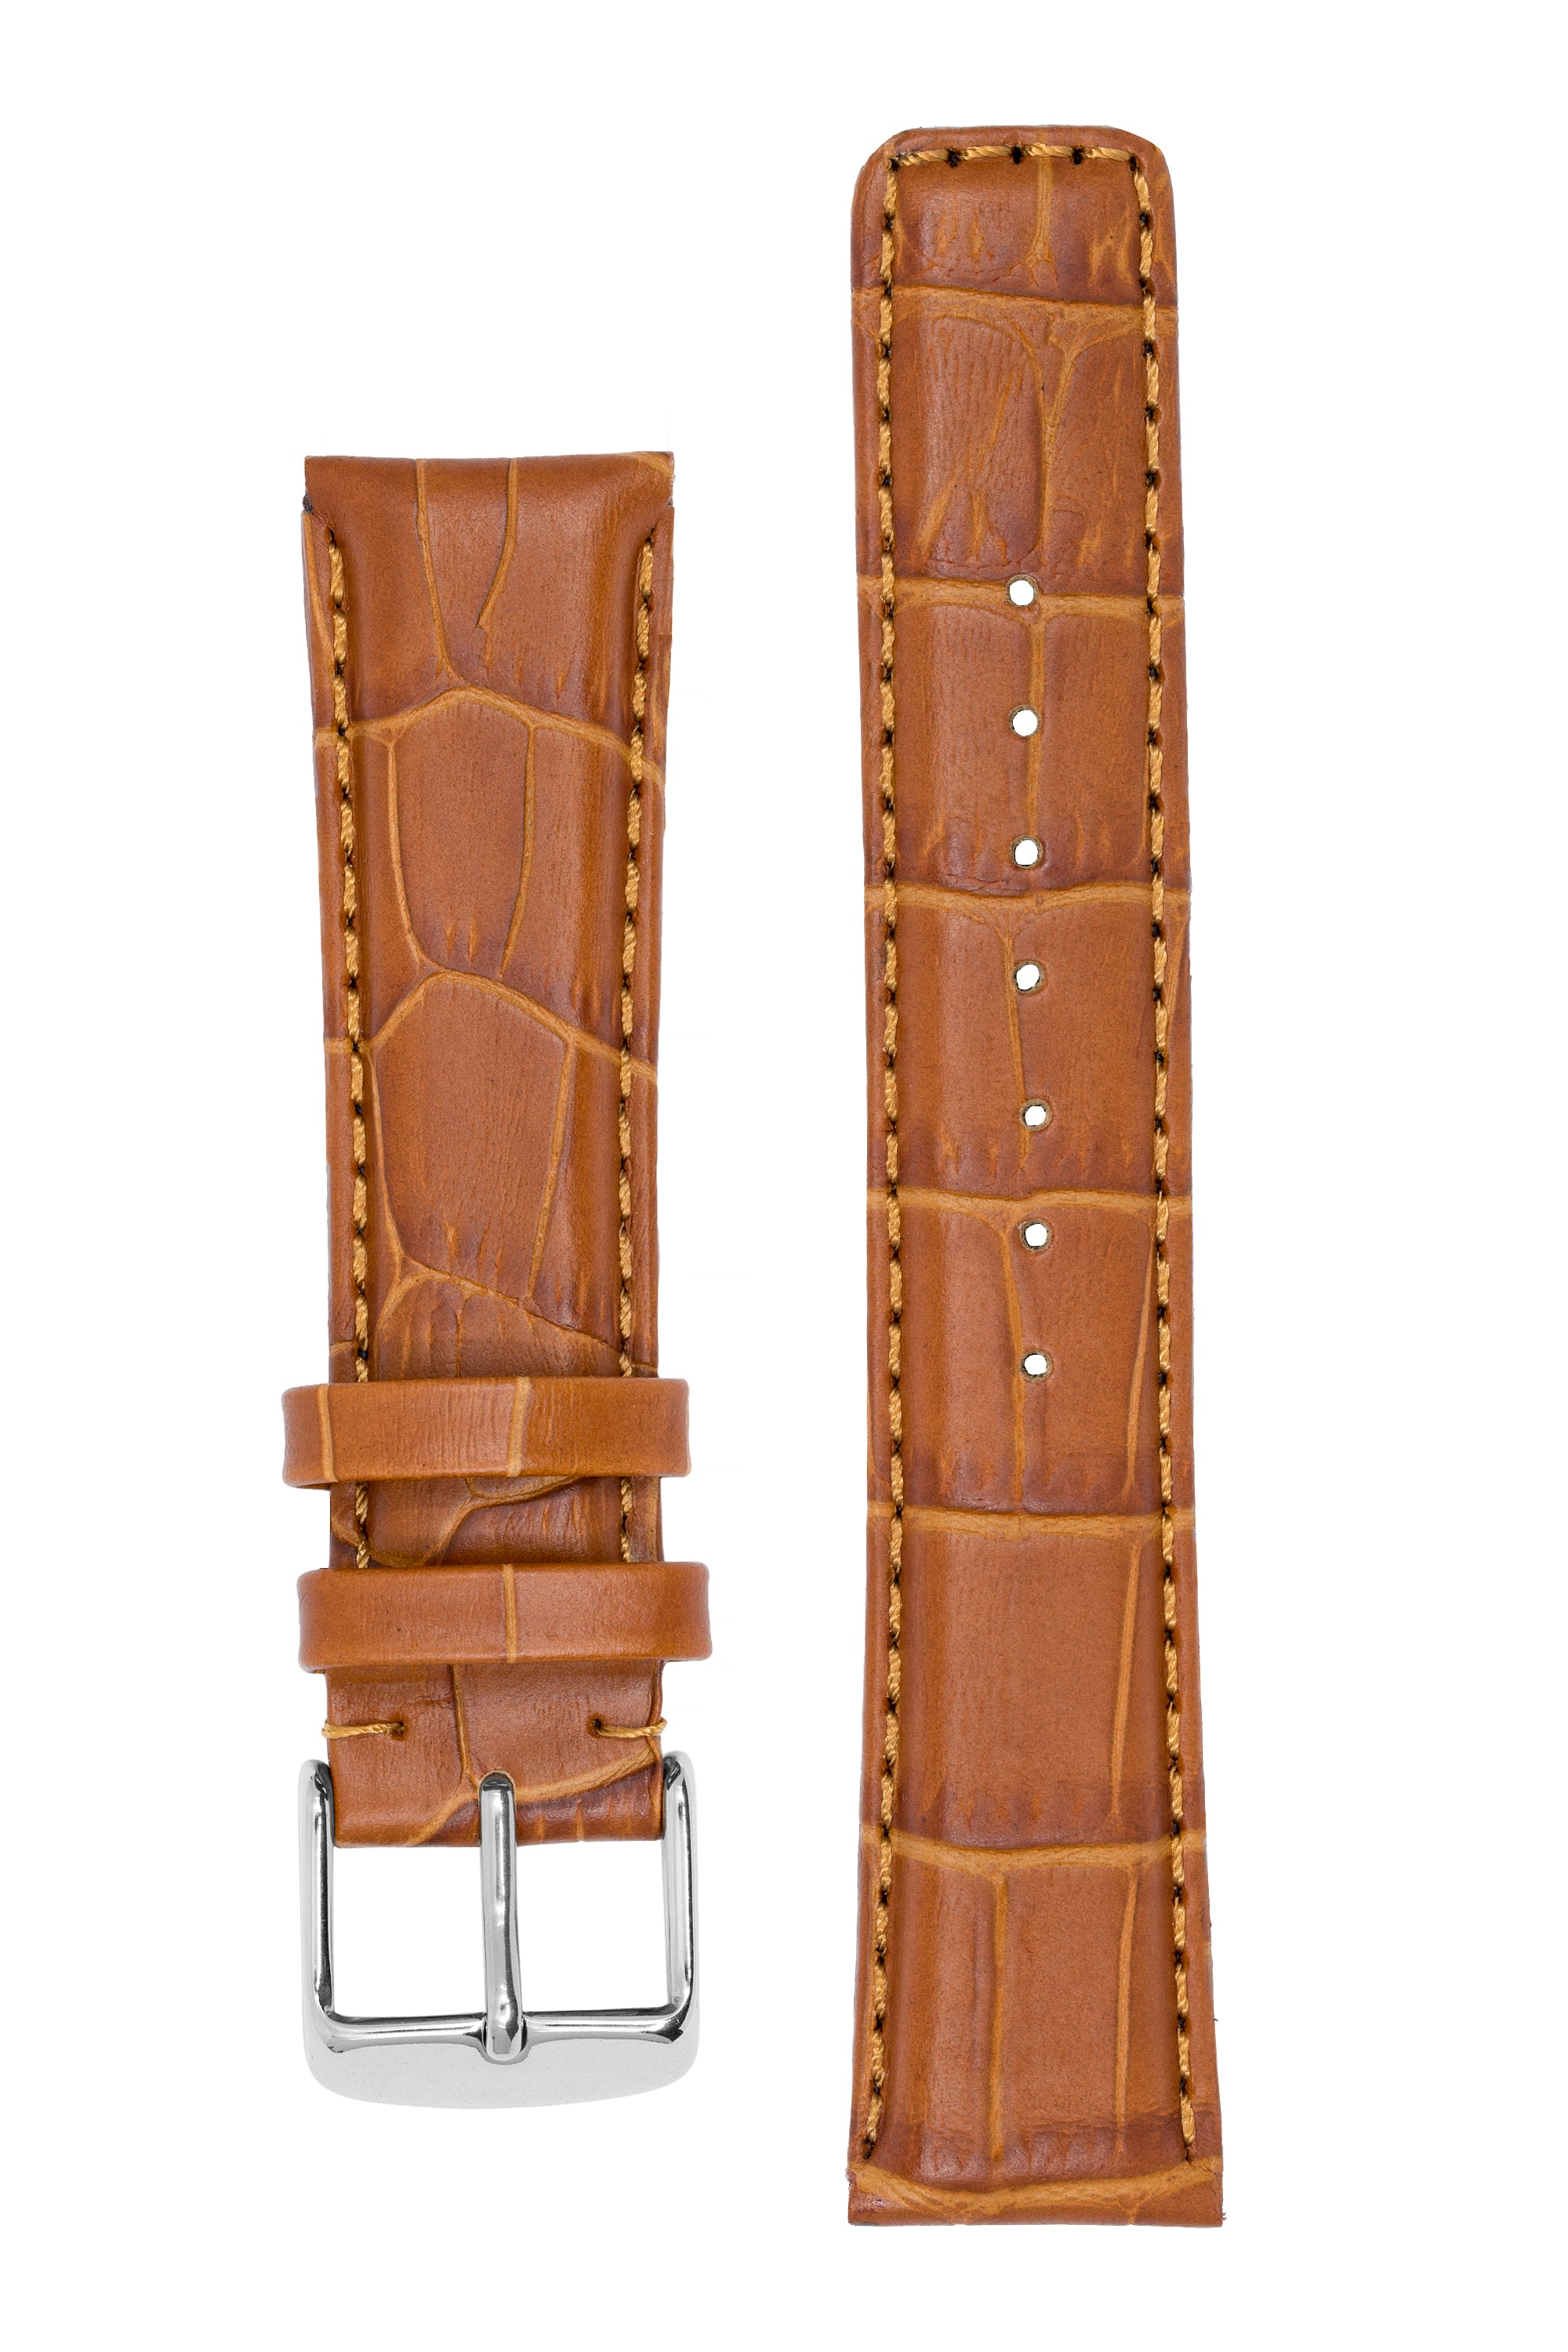 IWC-Style Alligator Embossed Leather Watch Strap in BROWN